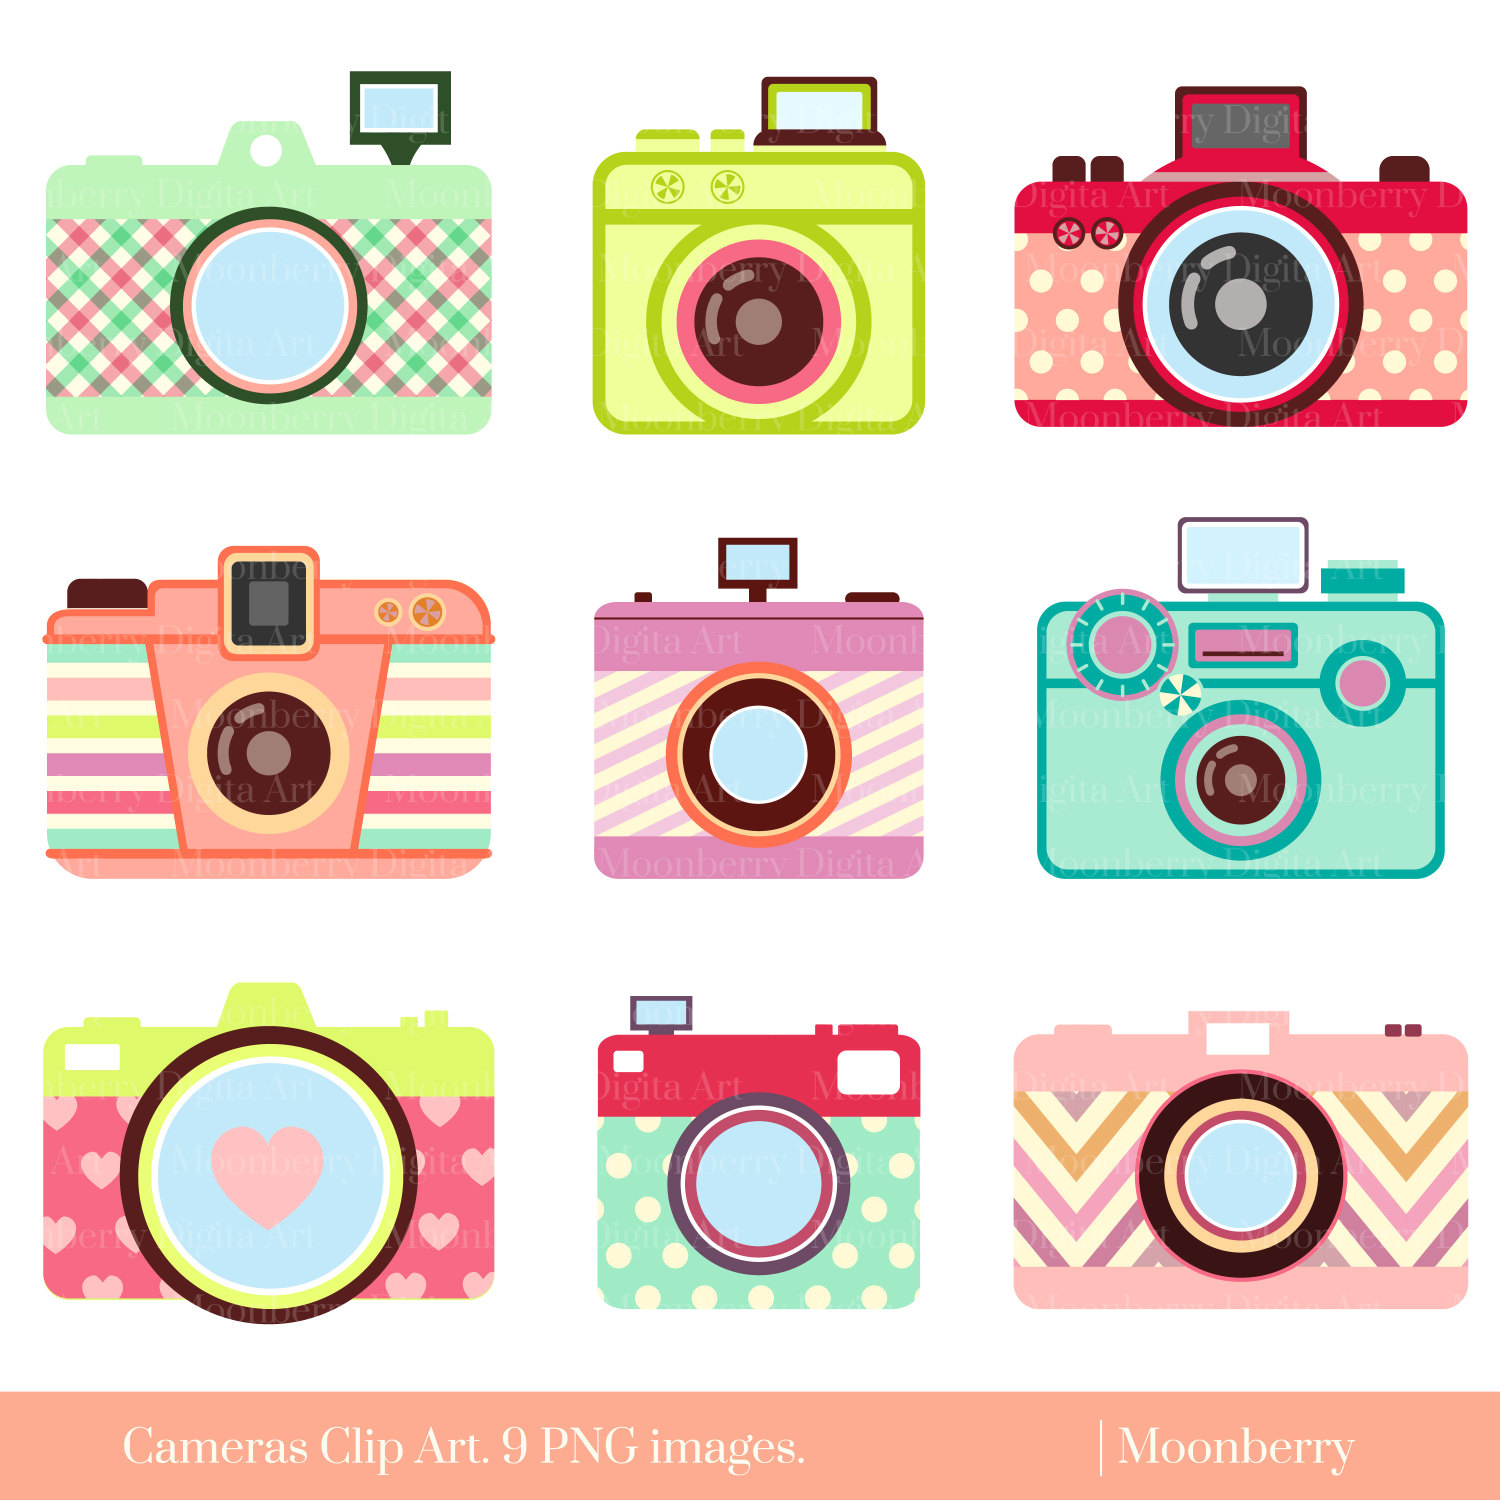 camera clip art app - photo #37